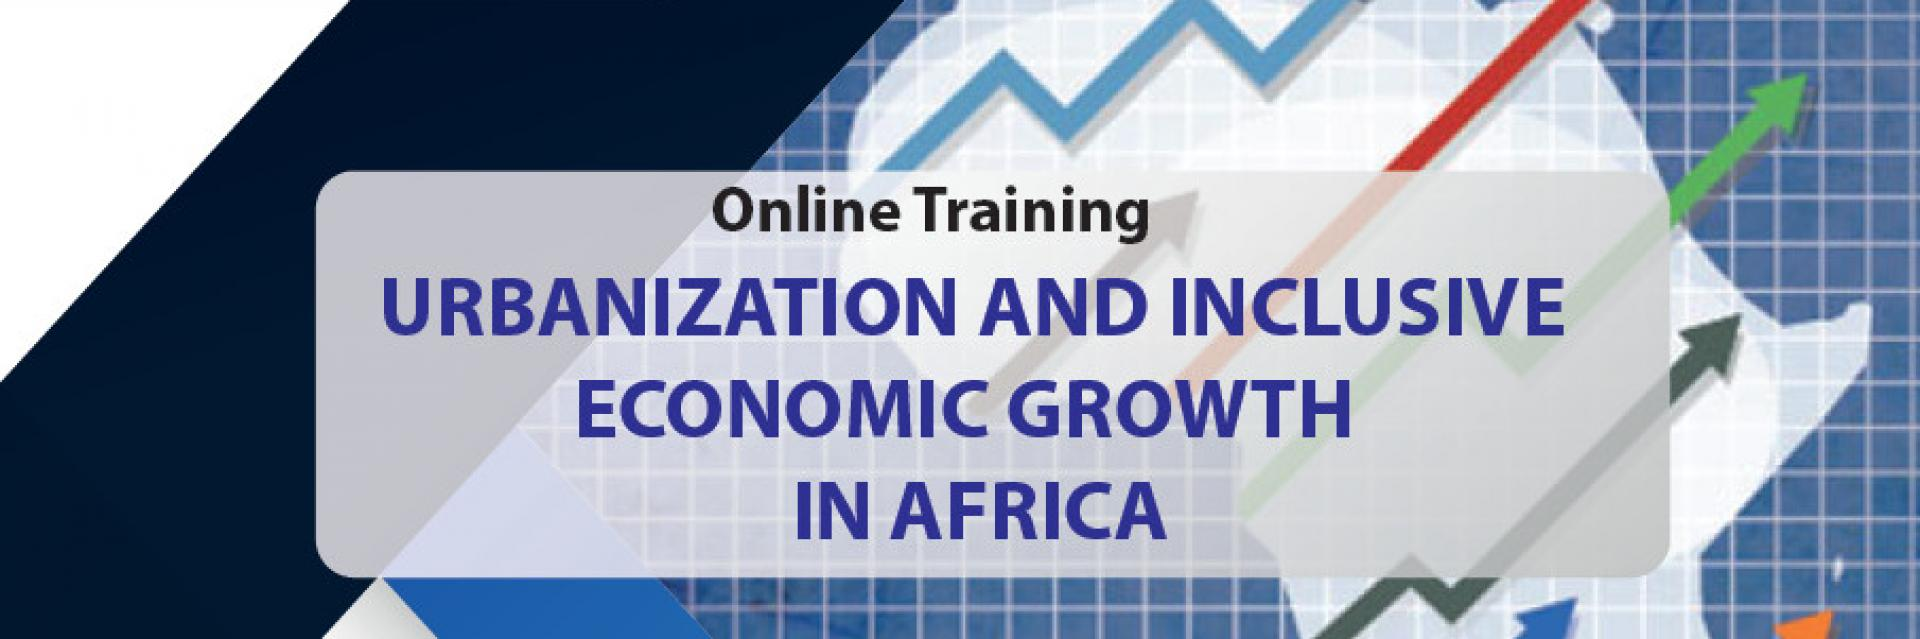 Urbanization and Inclusive Economic Growth in Africa